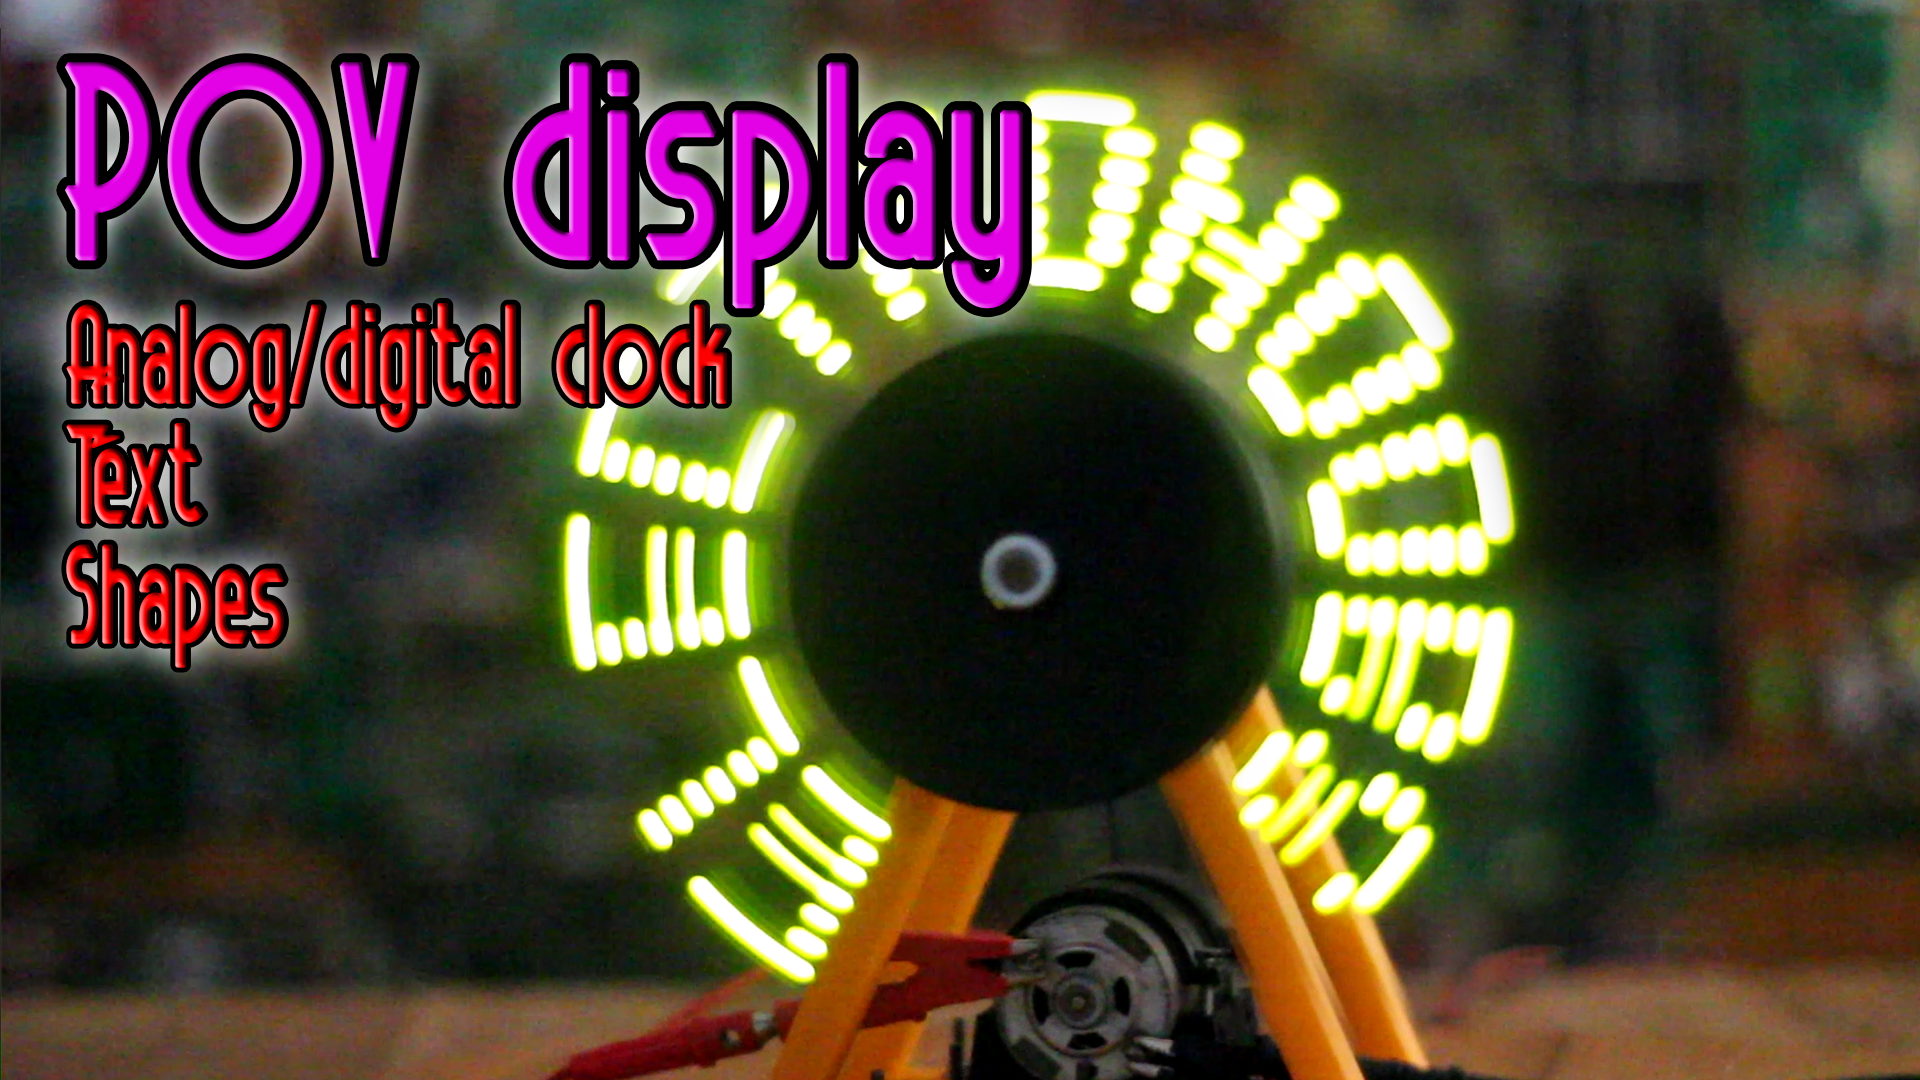 arduino POV display LED spin code